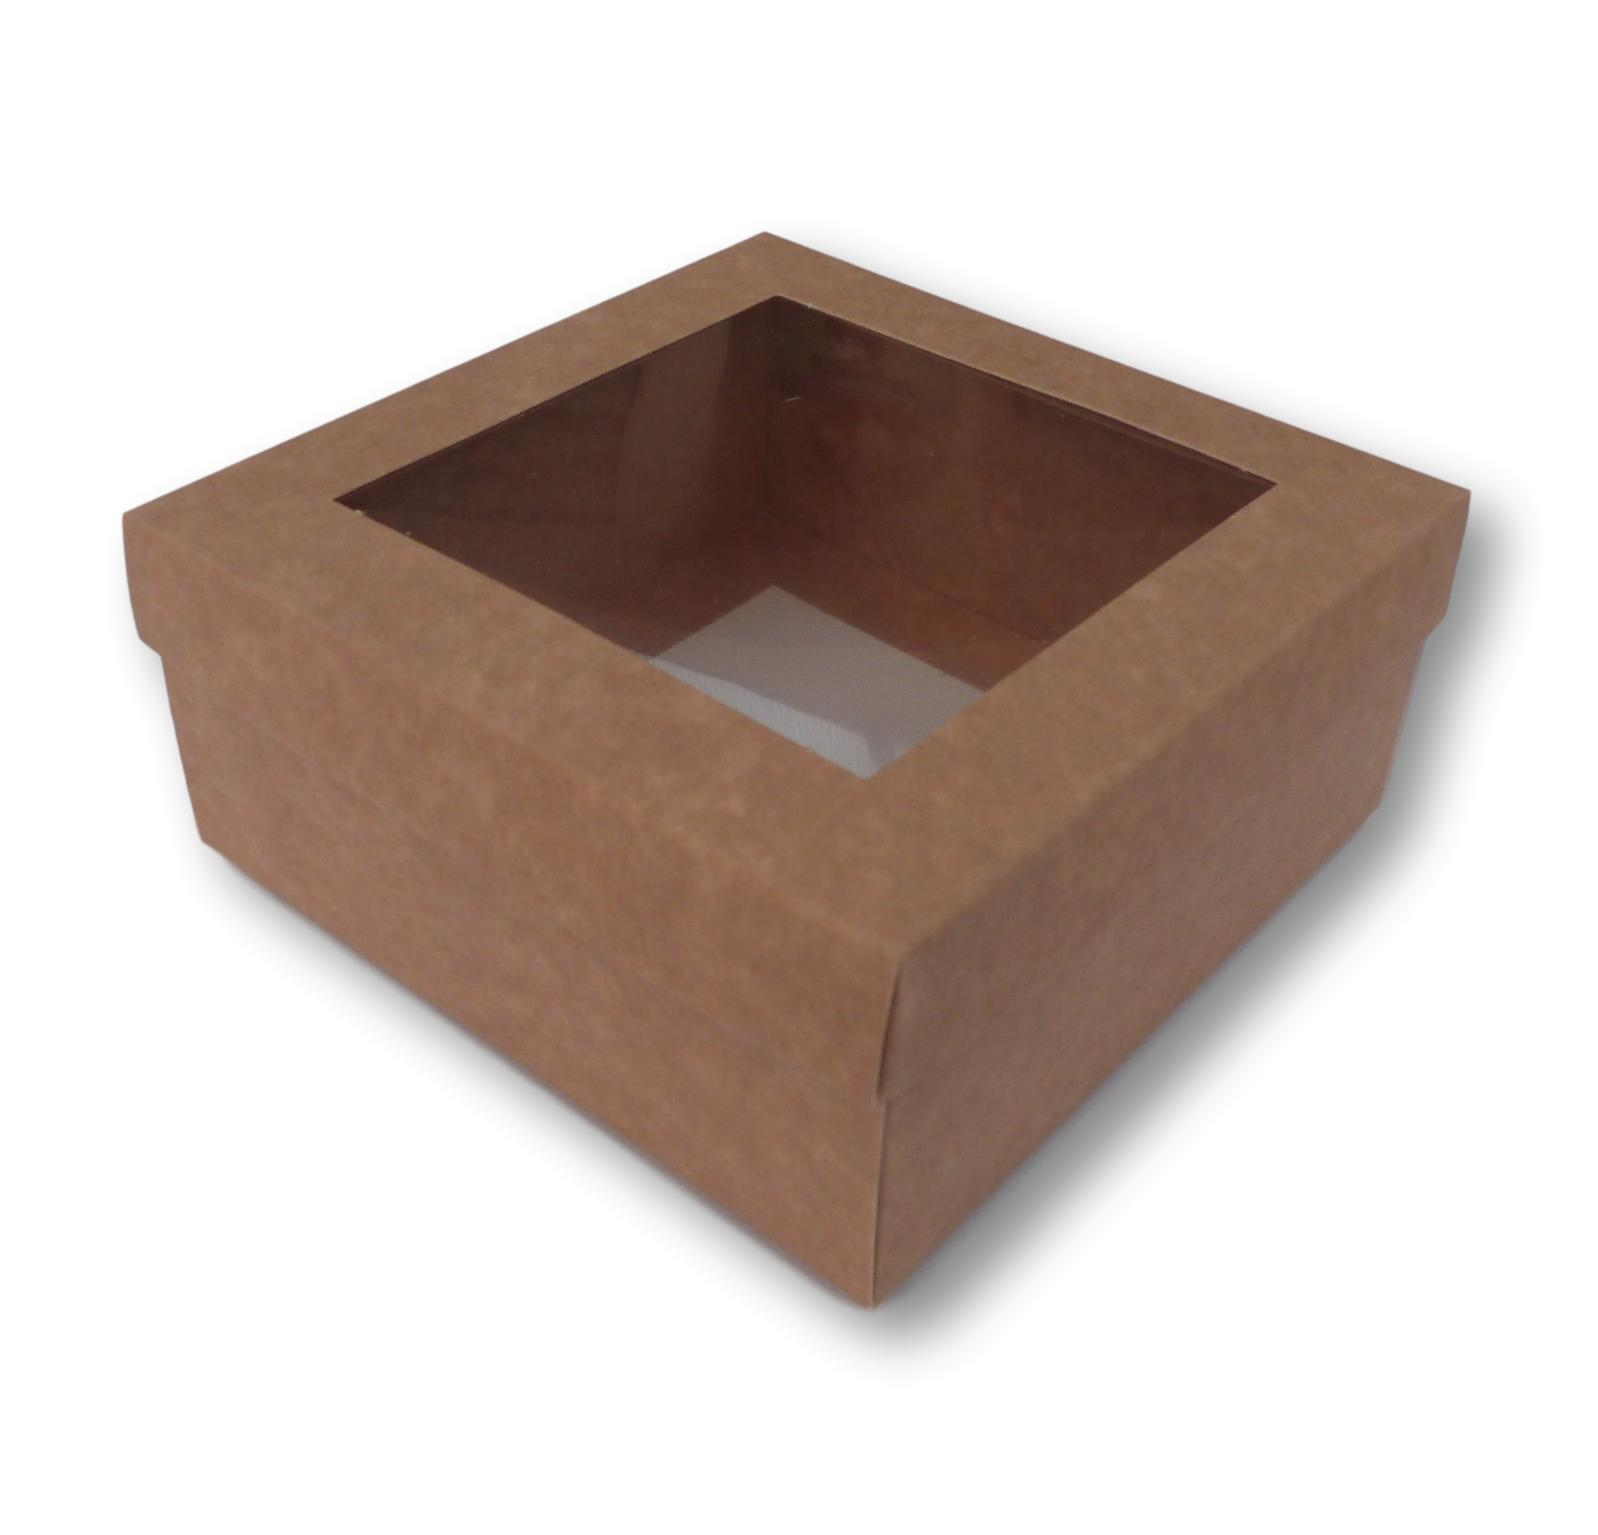 200 KRAFT 5 x x x 5 INCH BOX WITH WINDOW LID, GIFTS, GARMENTS, CAKES ETC 895938